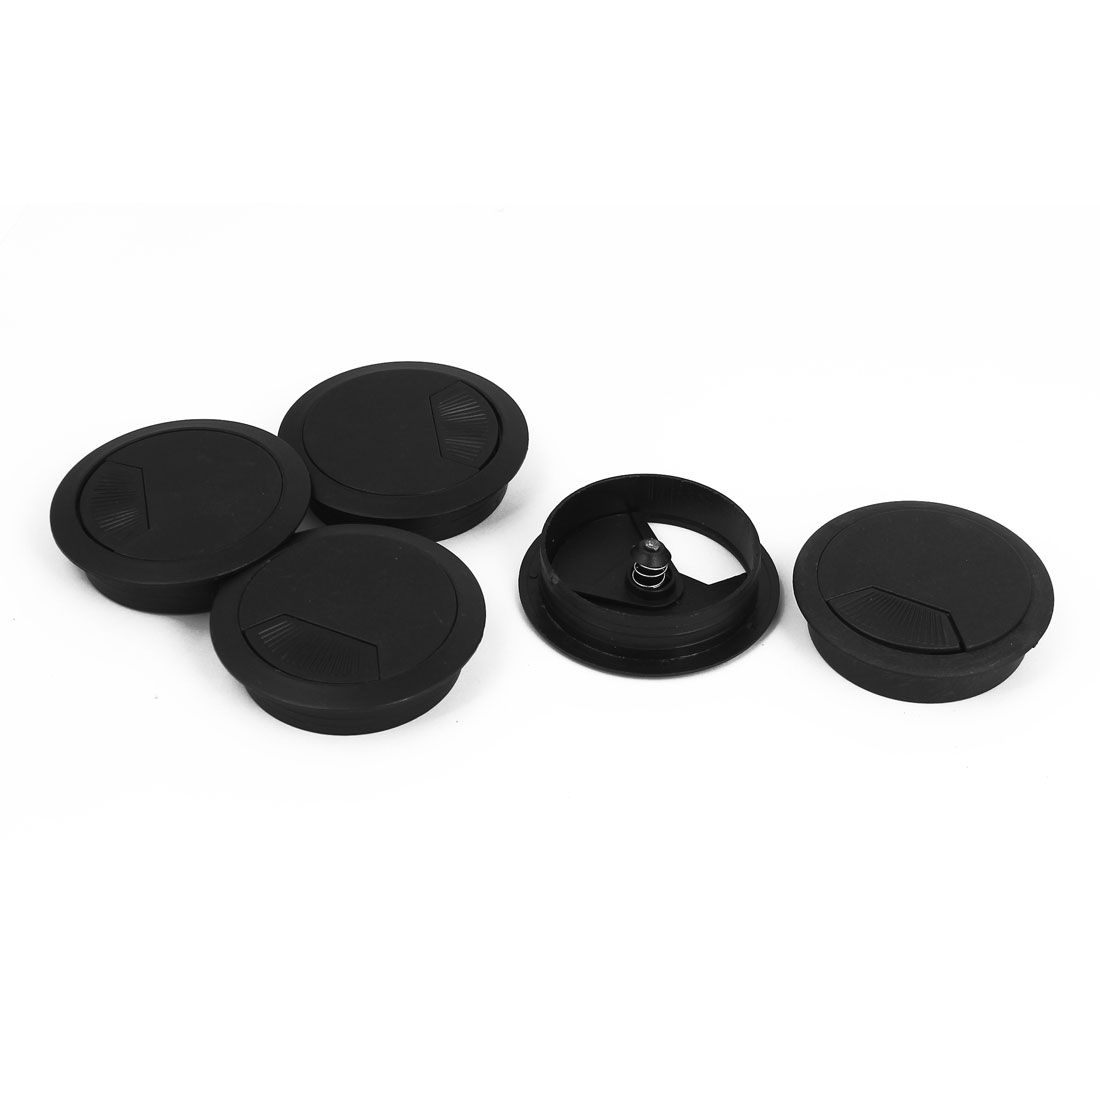 Computer Desk Table Plastic Grommet Wire Cable Hole Cover Cap Black 5Pcs